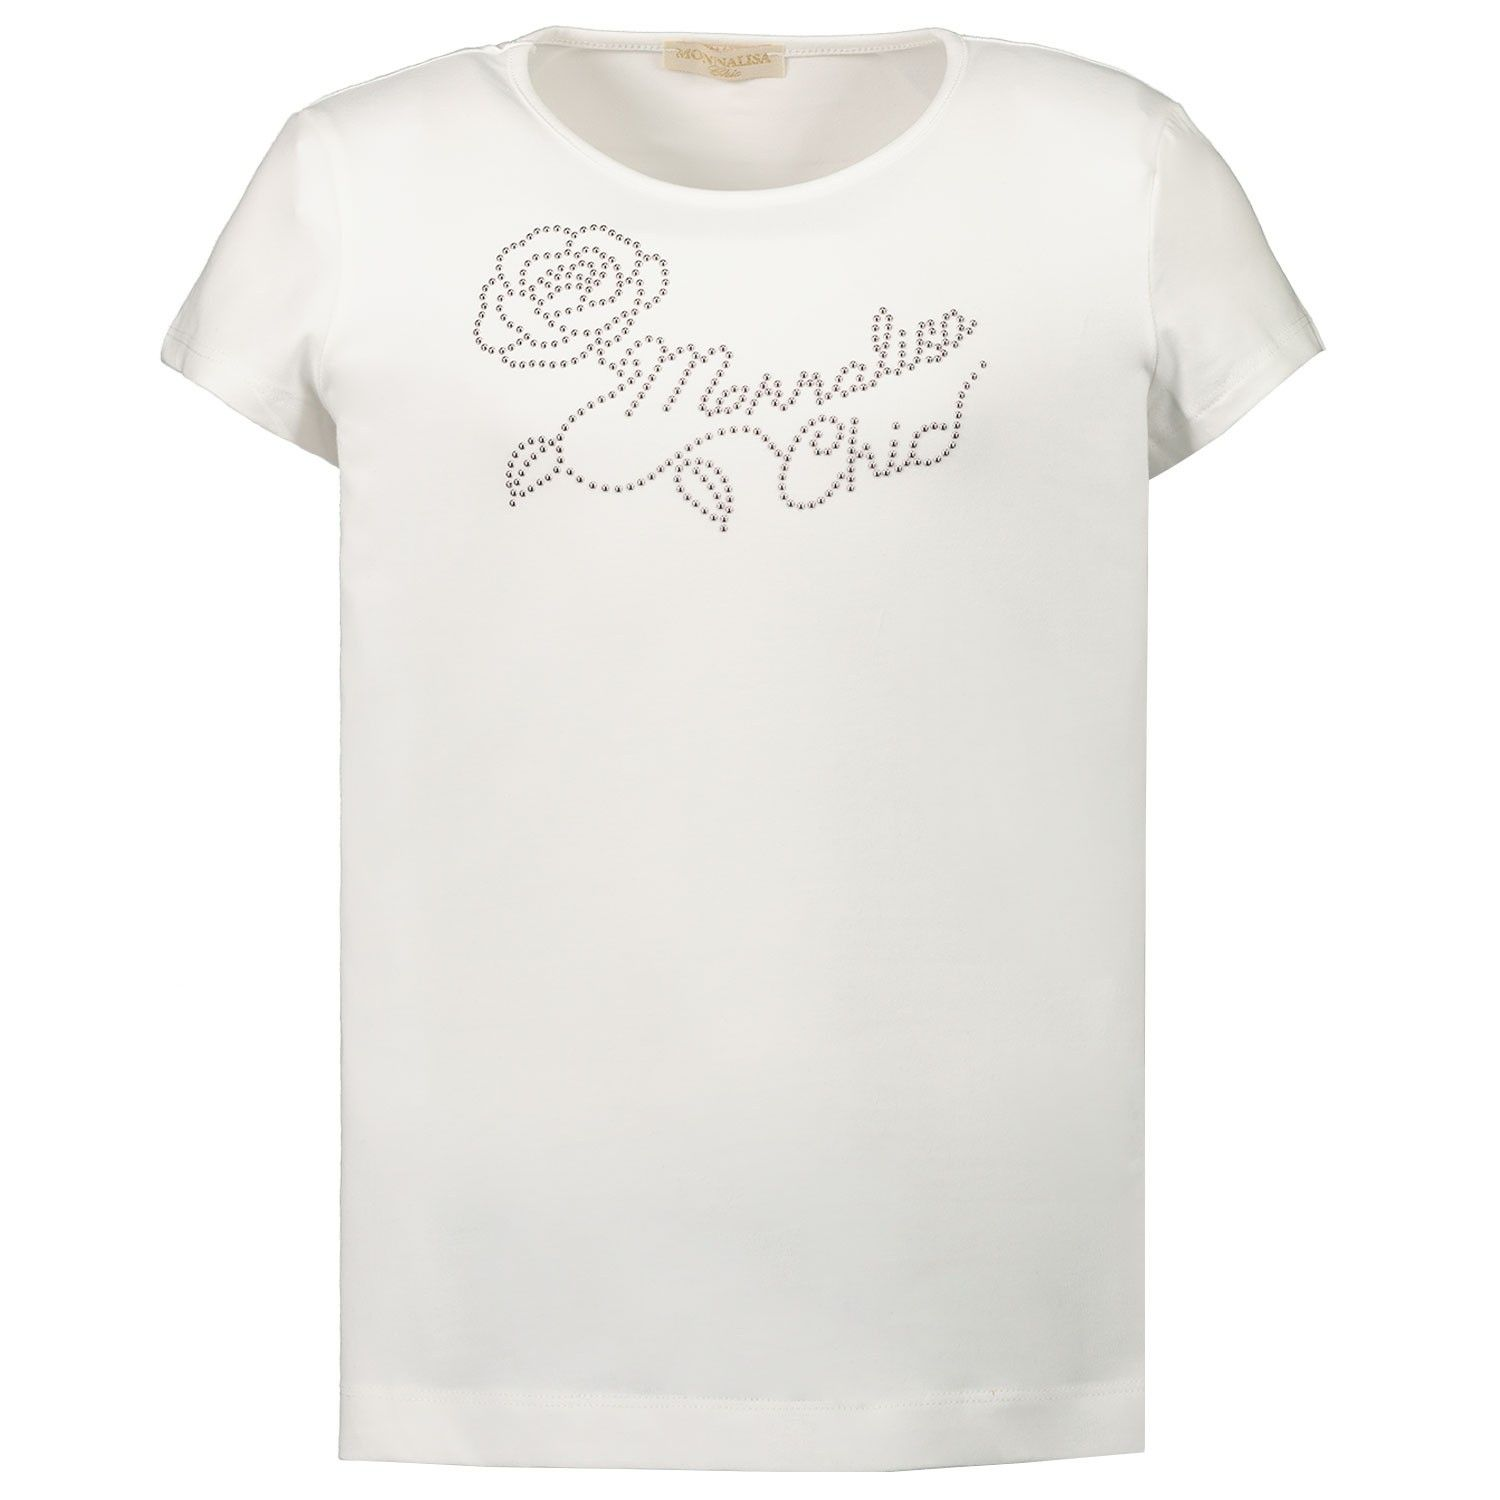 Picture of MonnaLisa 716603AC kids t-shirt off white